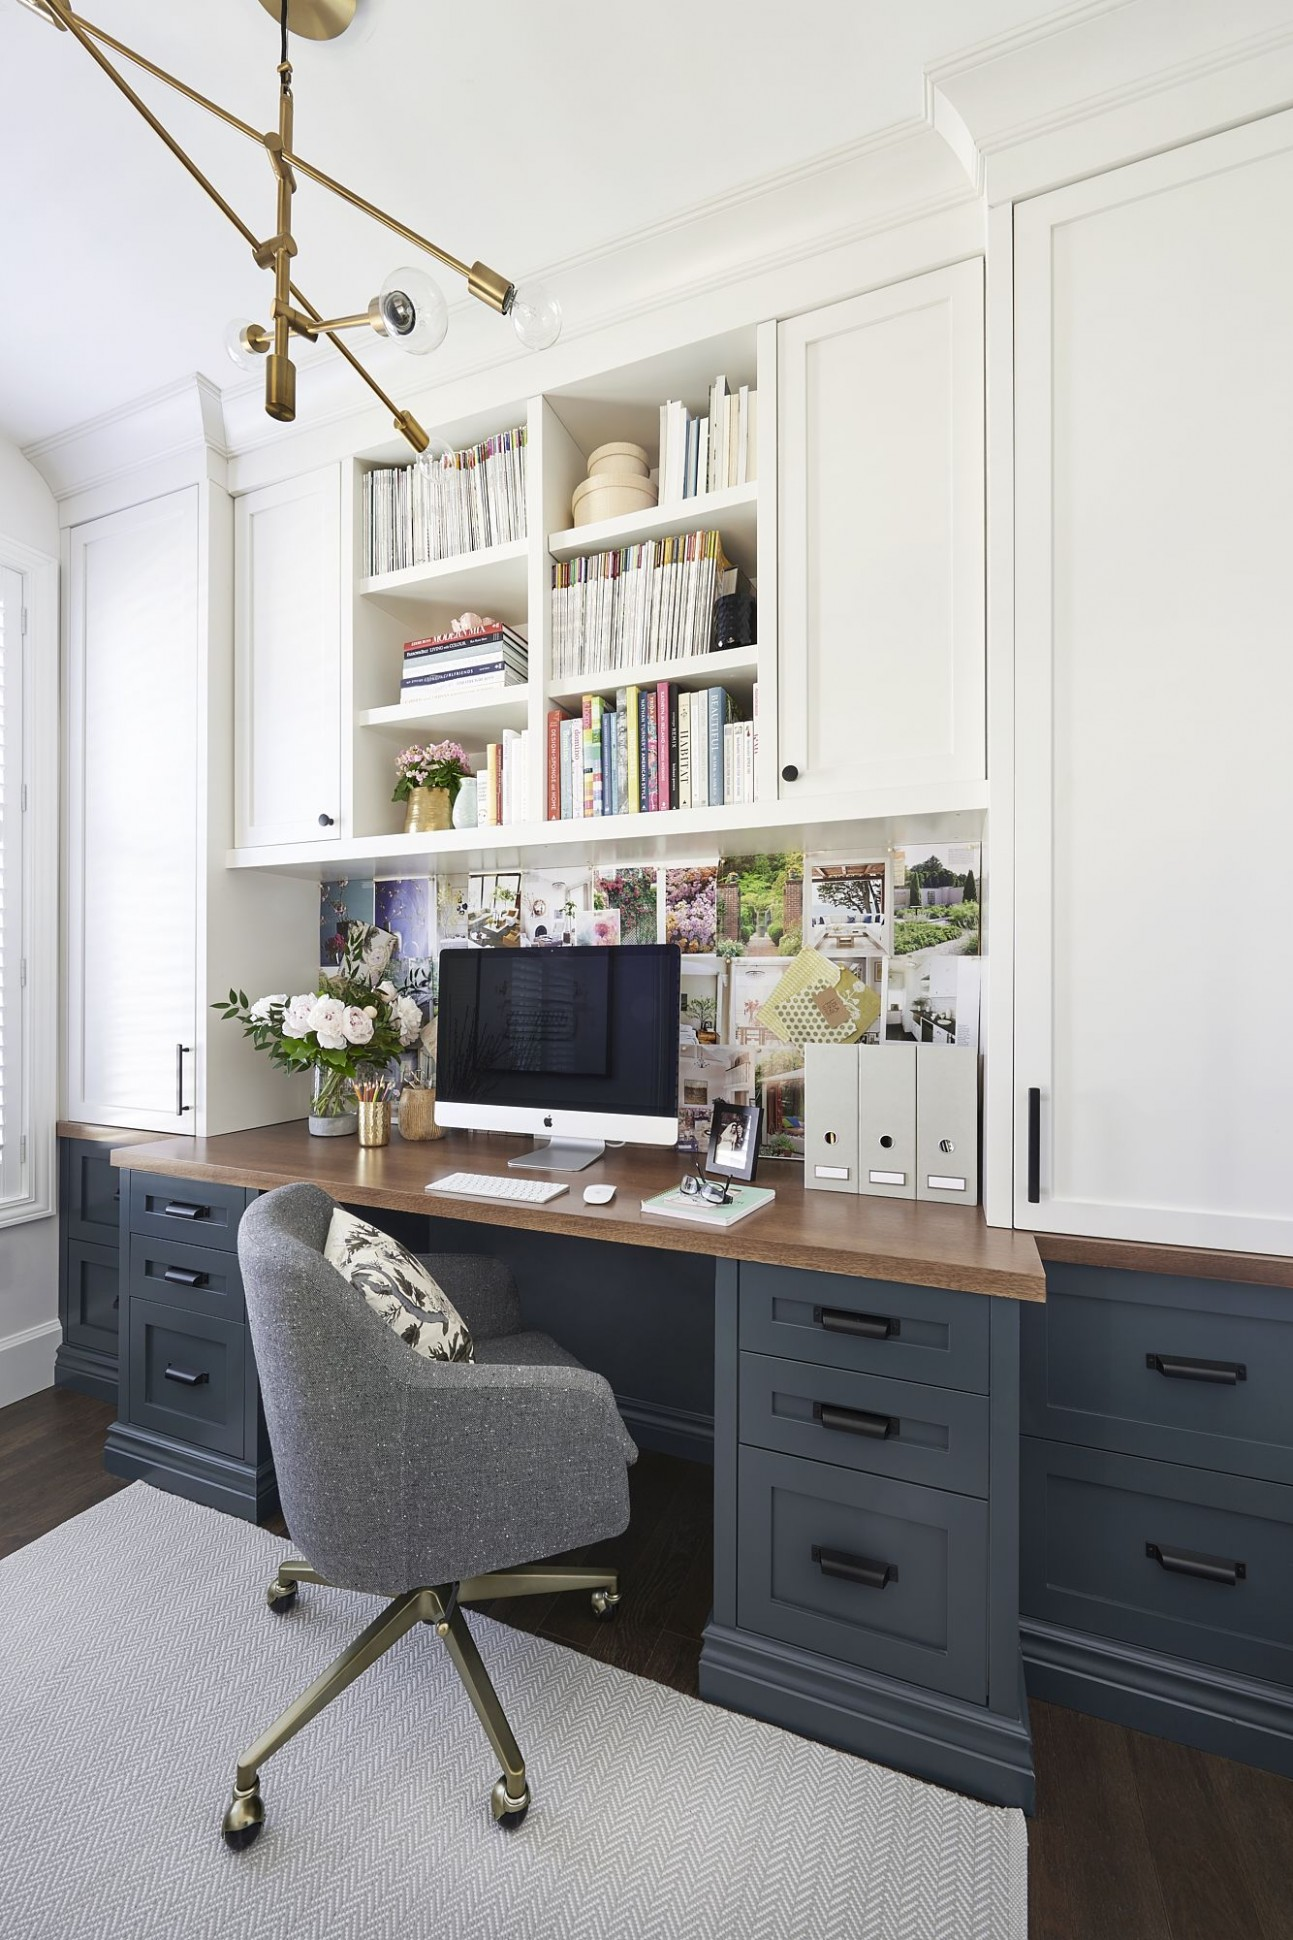 12 Home Office Ideas : Working from Your Home with Your Style  - Home Office Kitchen Design Ideas